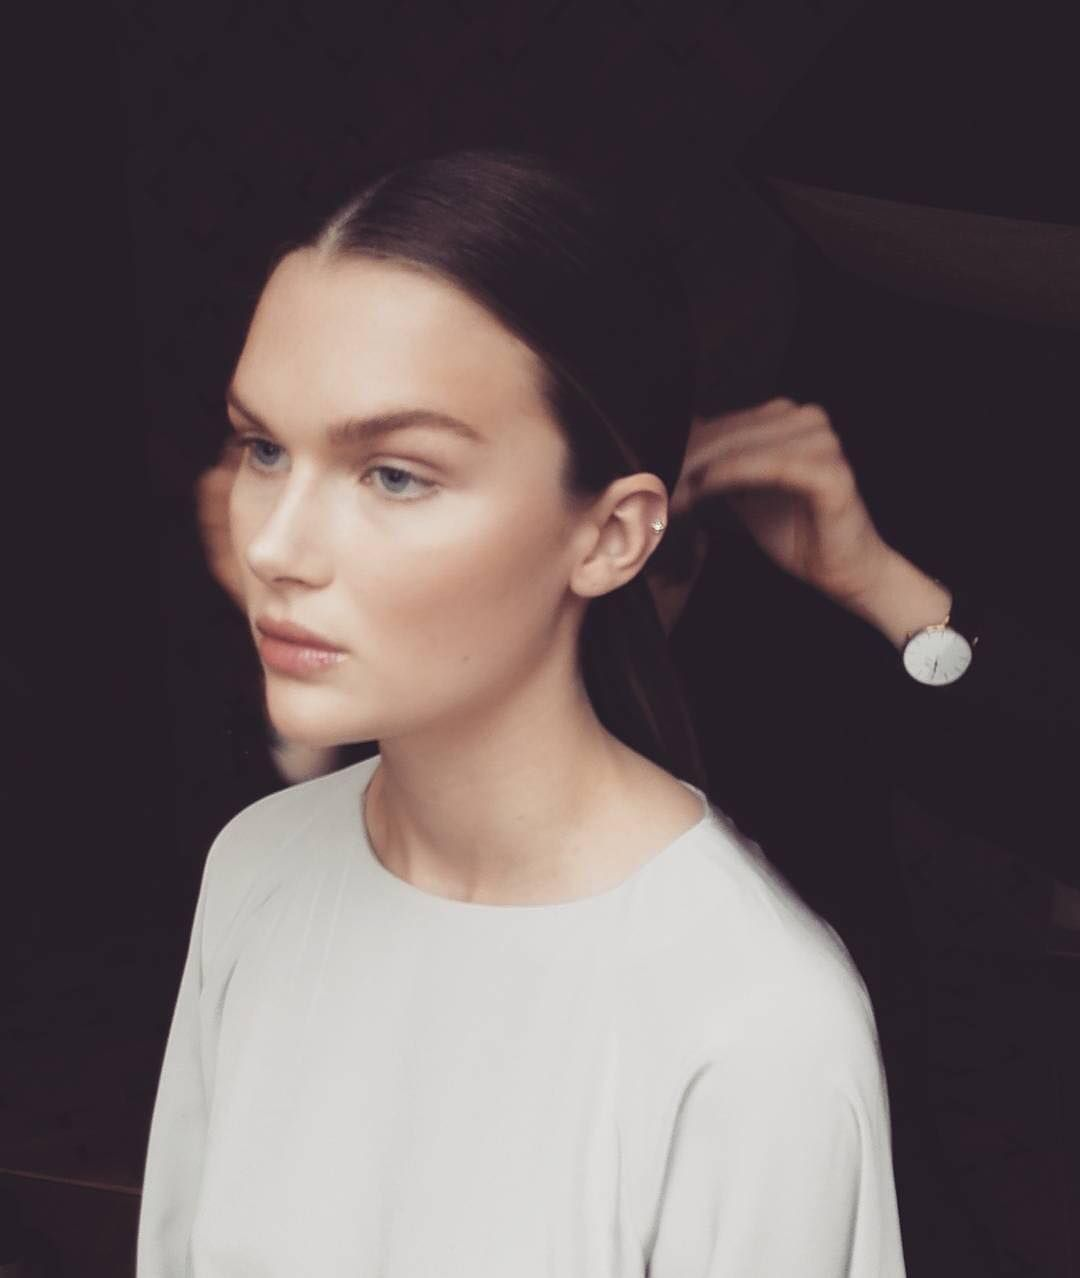 Beautfiul look by mua @lindanicolaysen. On this model she used our Luxe Liquid Foundation, Contour Kit on the eyes and below the cheekbones,  Brow Powder Duo in 'brown' for eyebrows and Gloss on the lips in 'naked'.